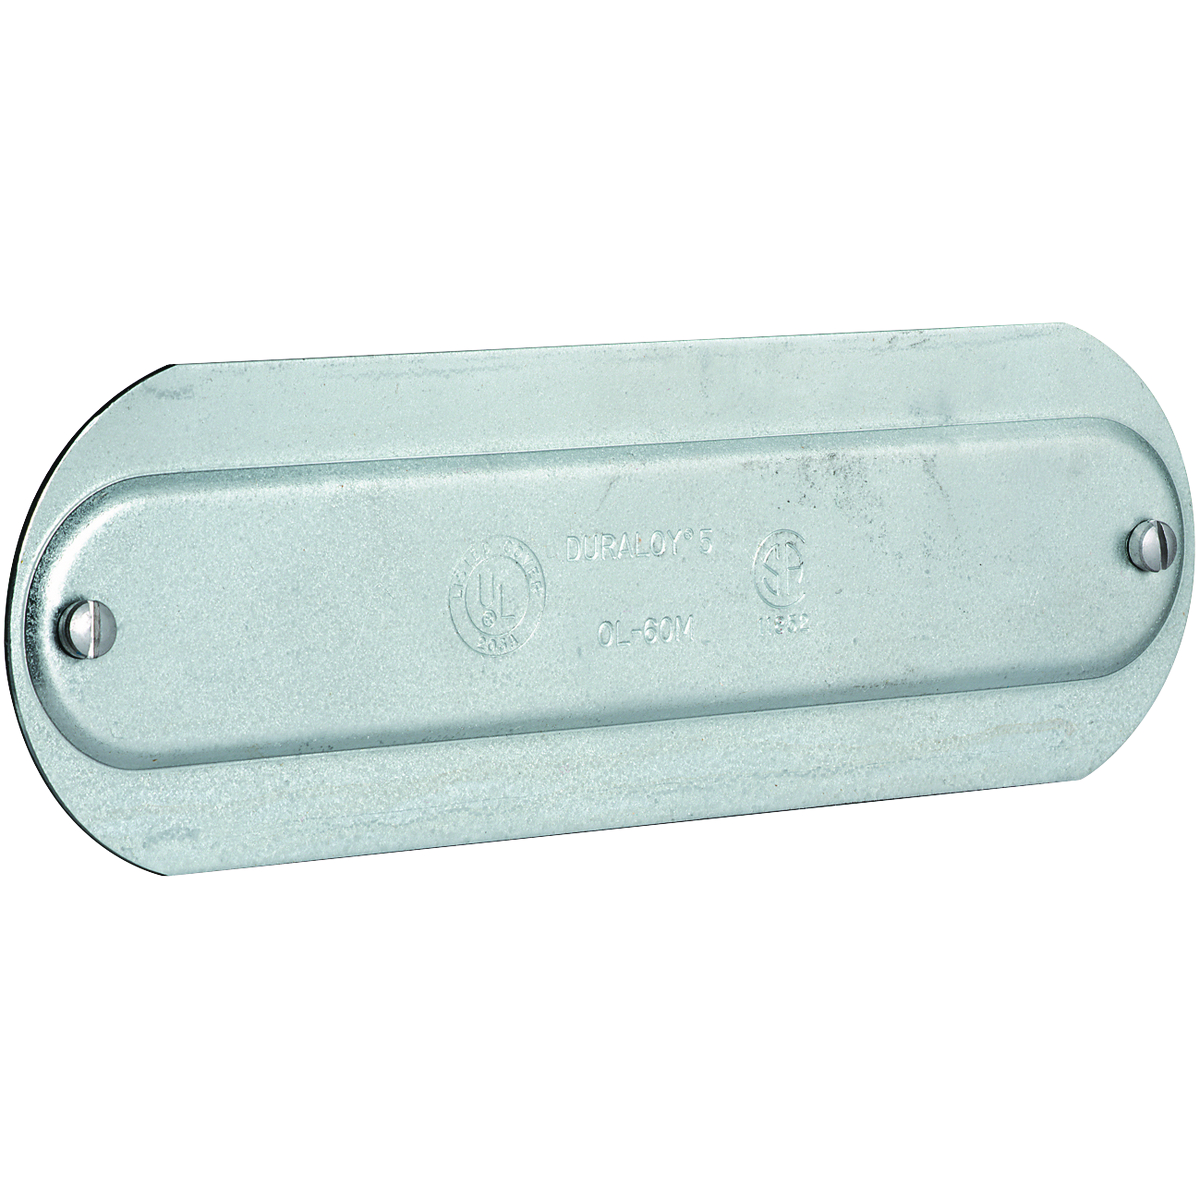 O SERIES/DURALOY 5 SERIES - ALUMINUM CONDUIT BODY COVER - HUB SIZE 3-1/2INCH